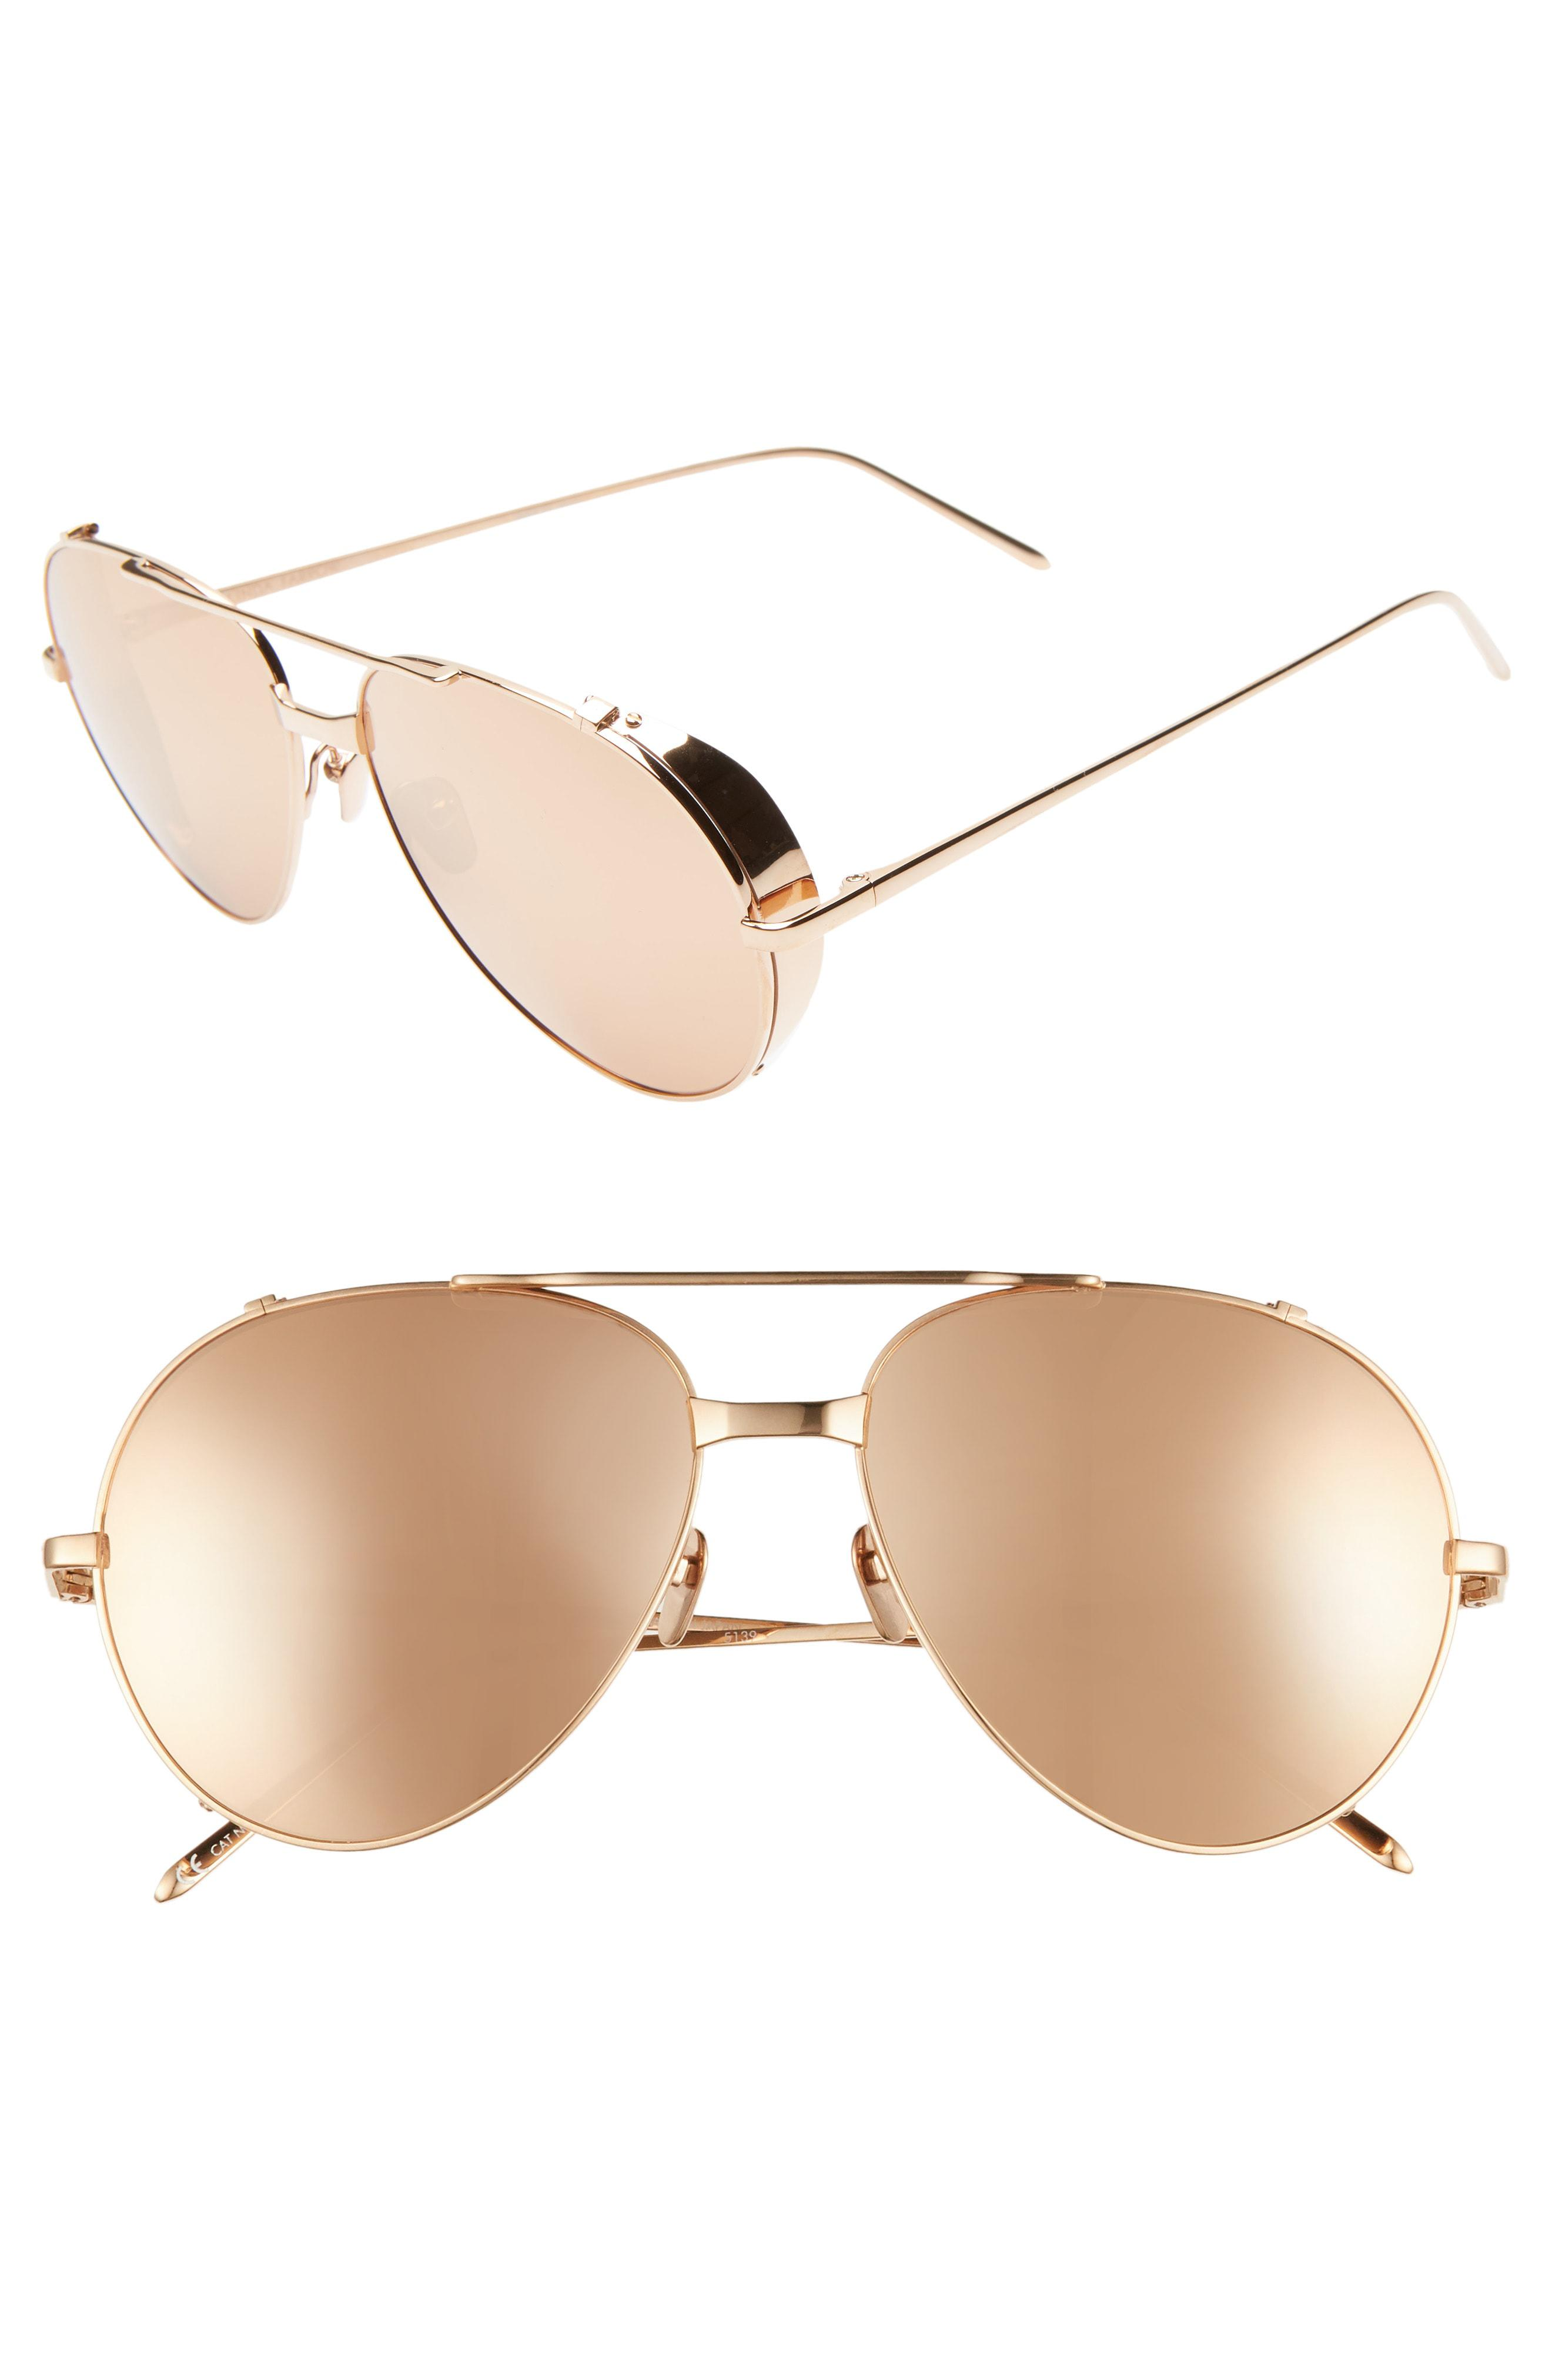 8deb723df42c Lyst - Linda Farrow 58mm Aviator Sunglasses in Metallic